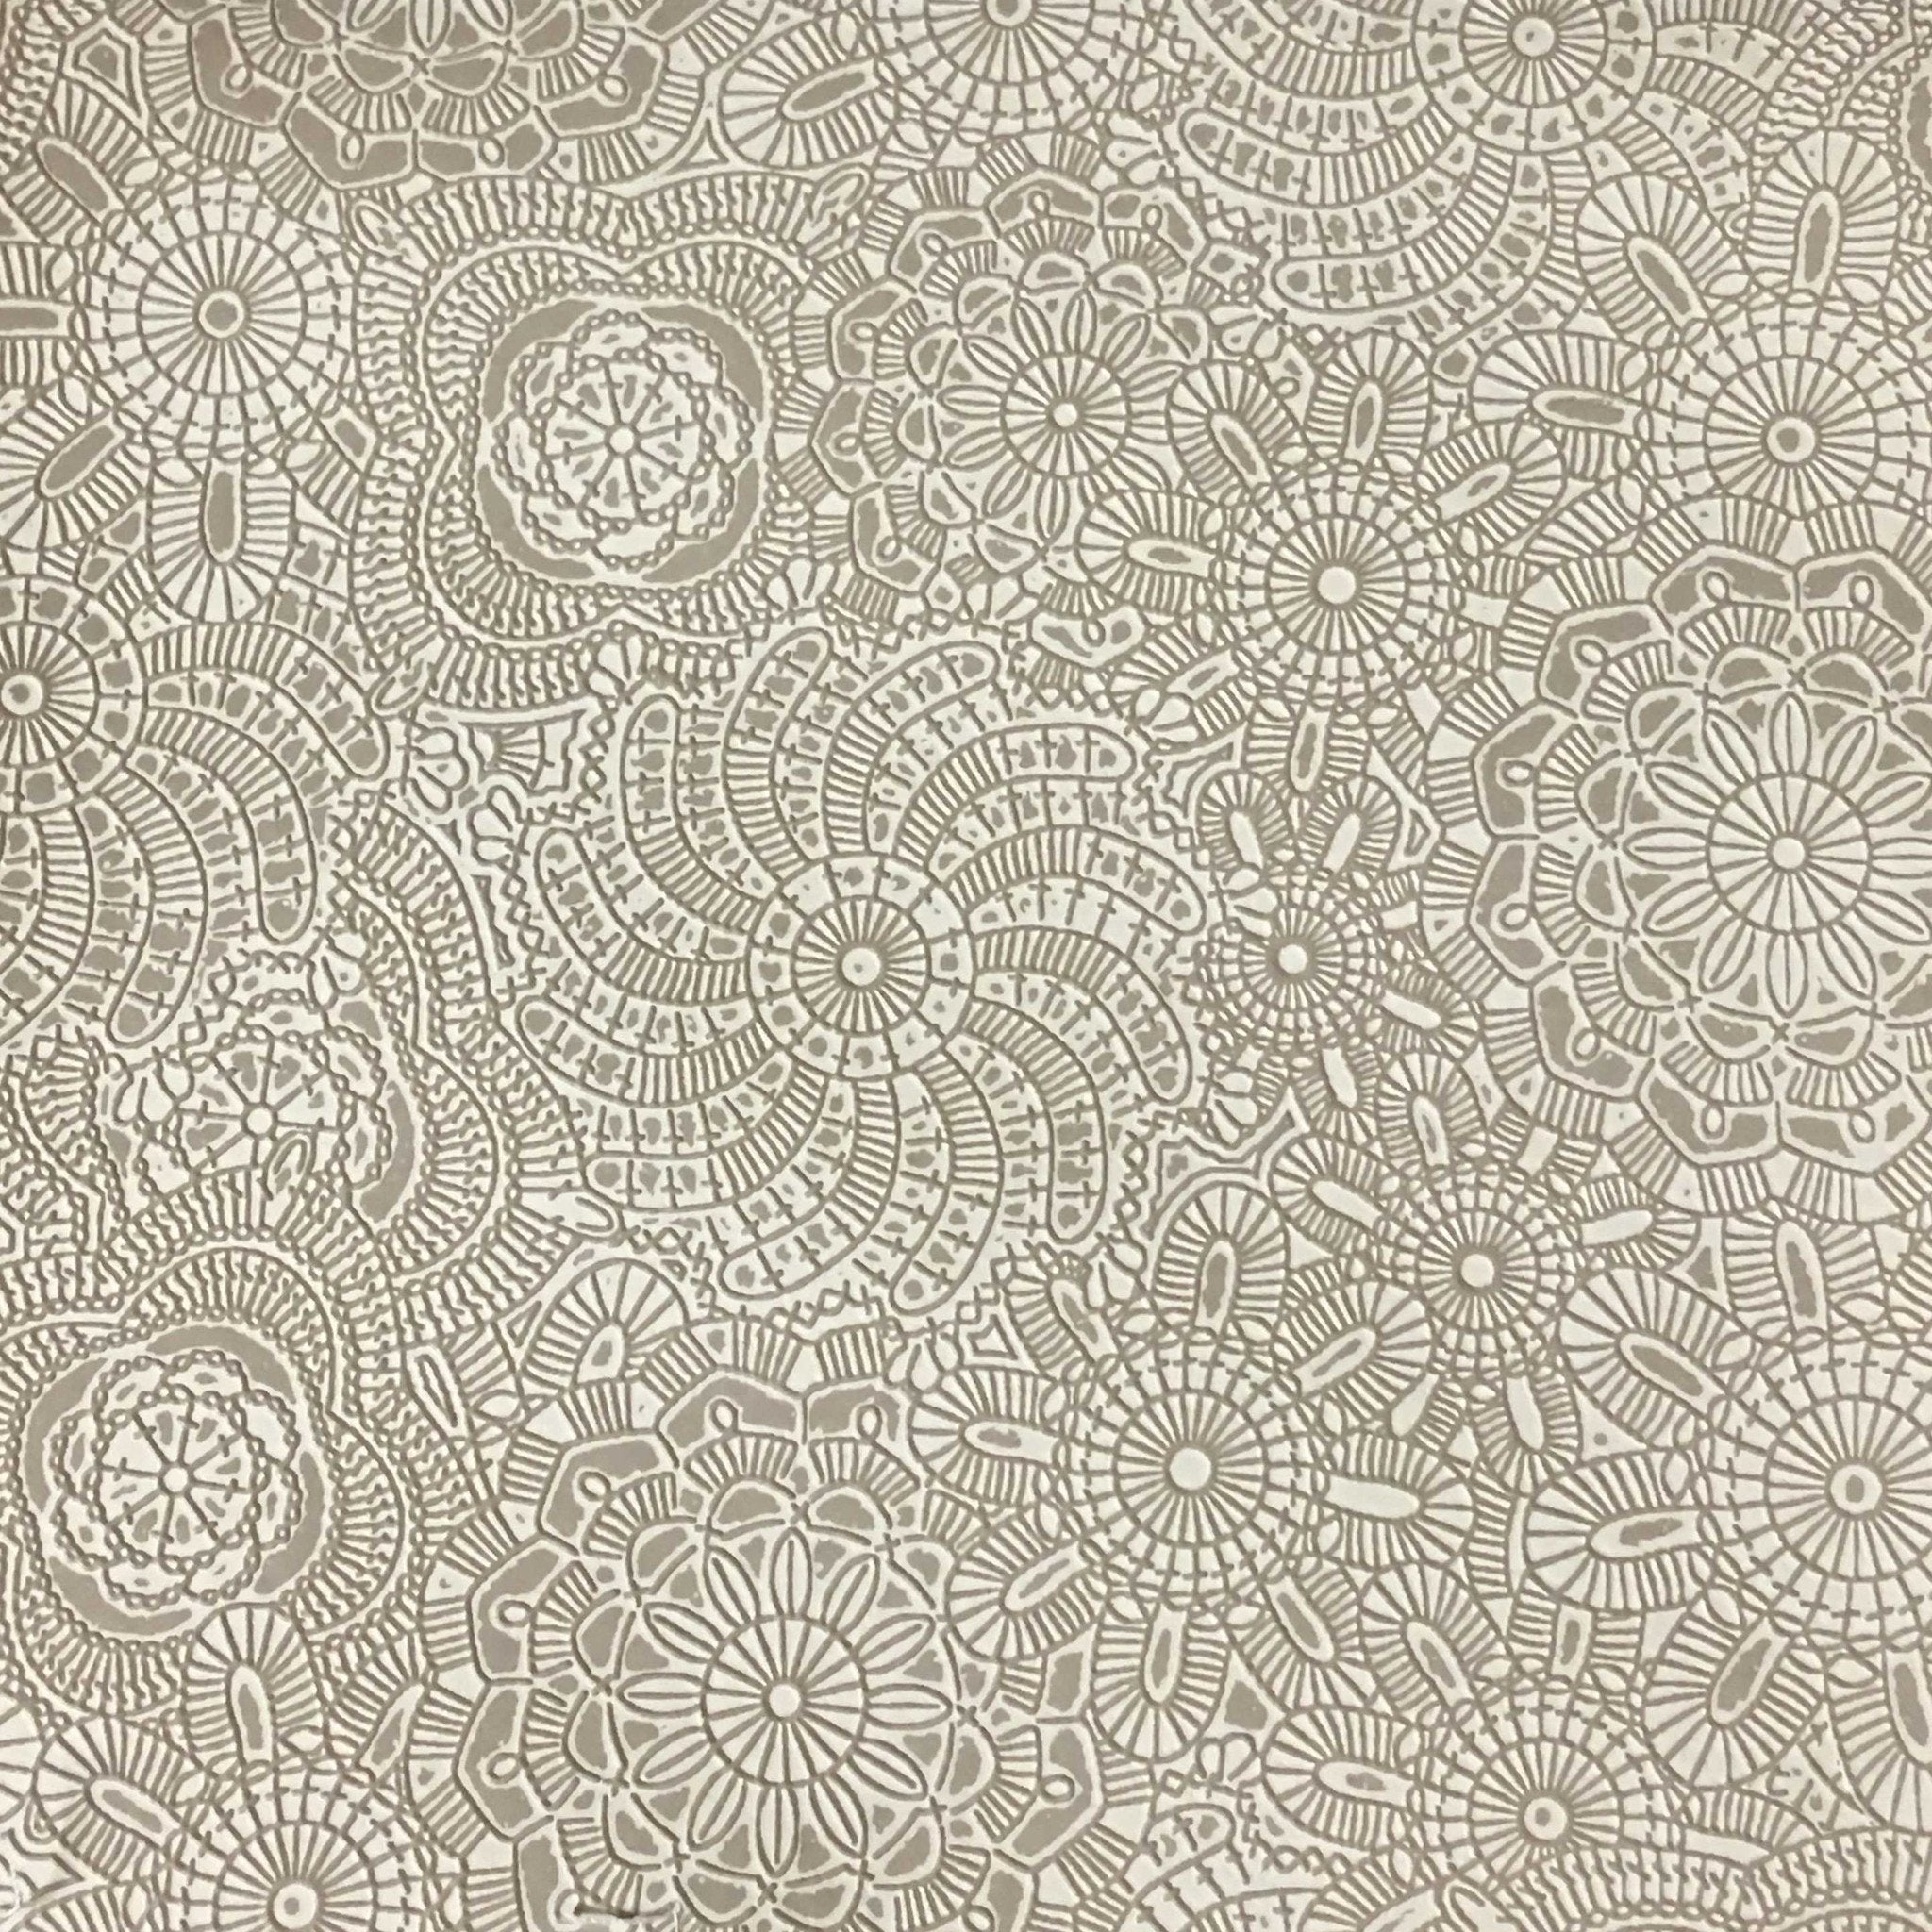 Camden - Embossed Designer Pattern Vinyl Upholstery Fabric by the Yard for upholstery fabric designs patterns  70ref